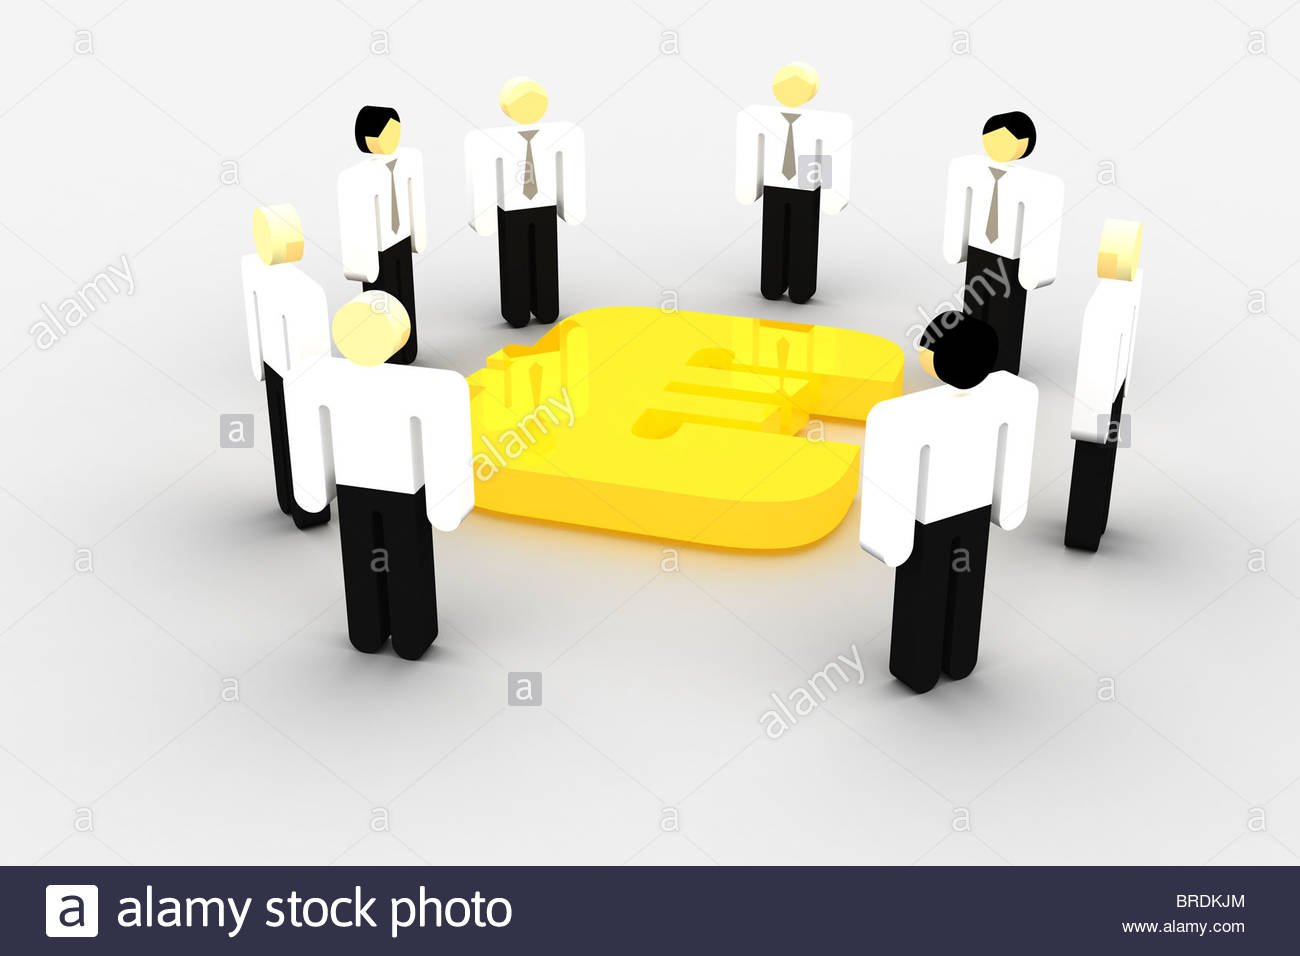 Golden U.S. dollars business symbol Stock Photo